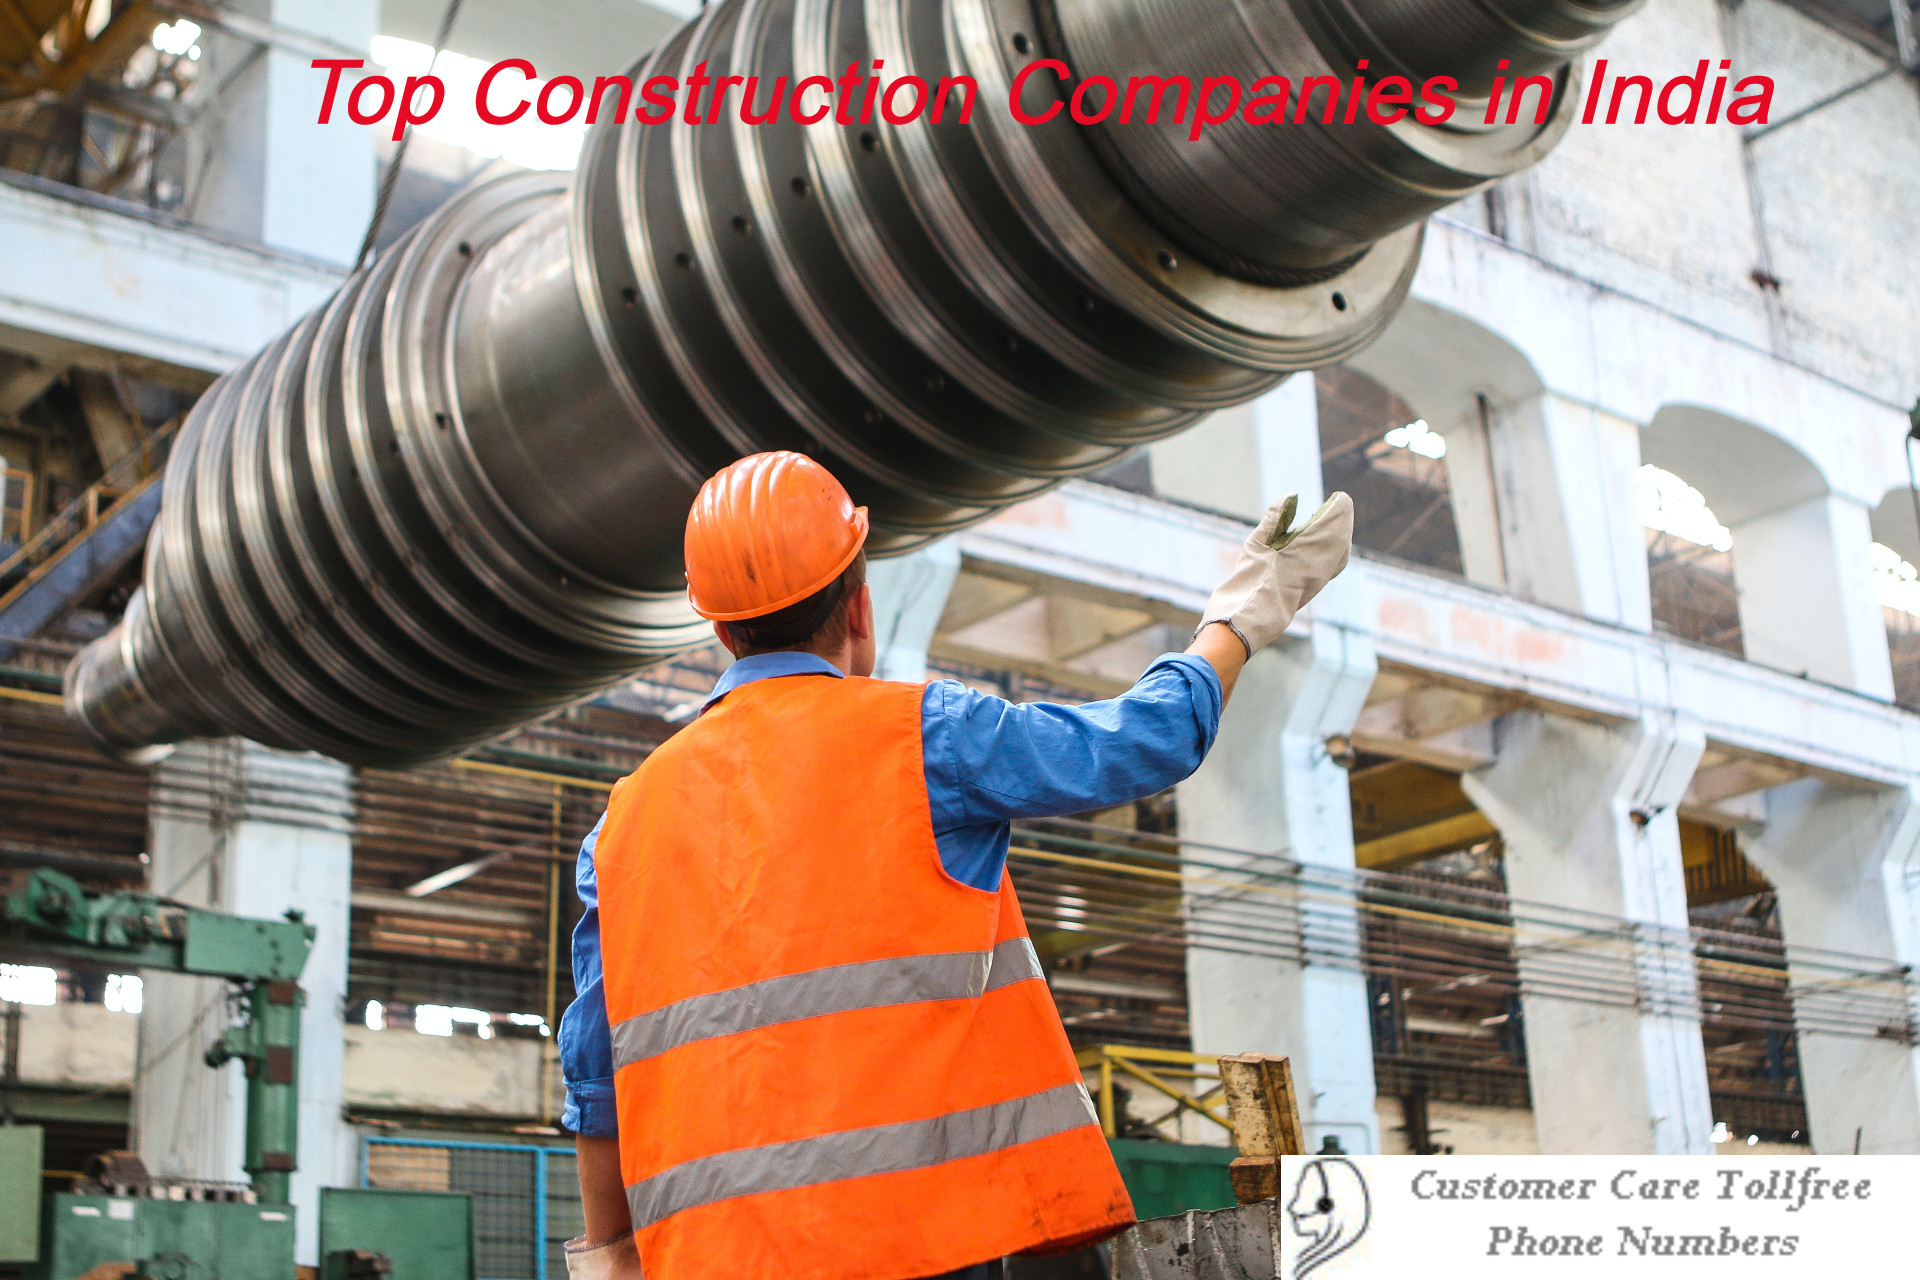 List of Top Construction Companies in India